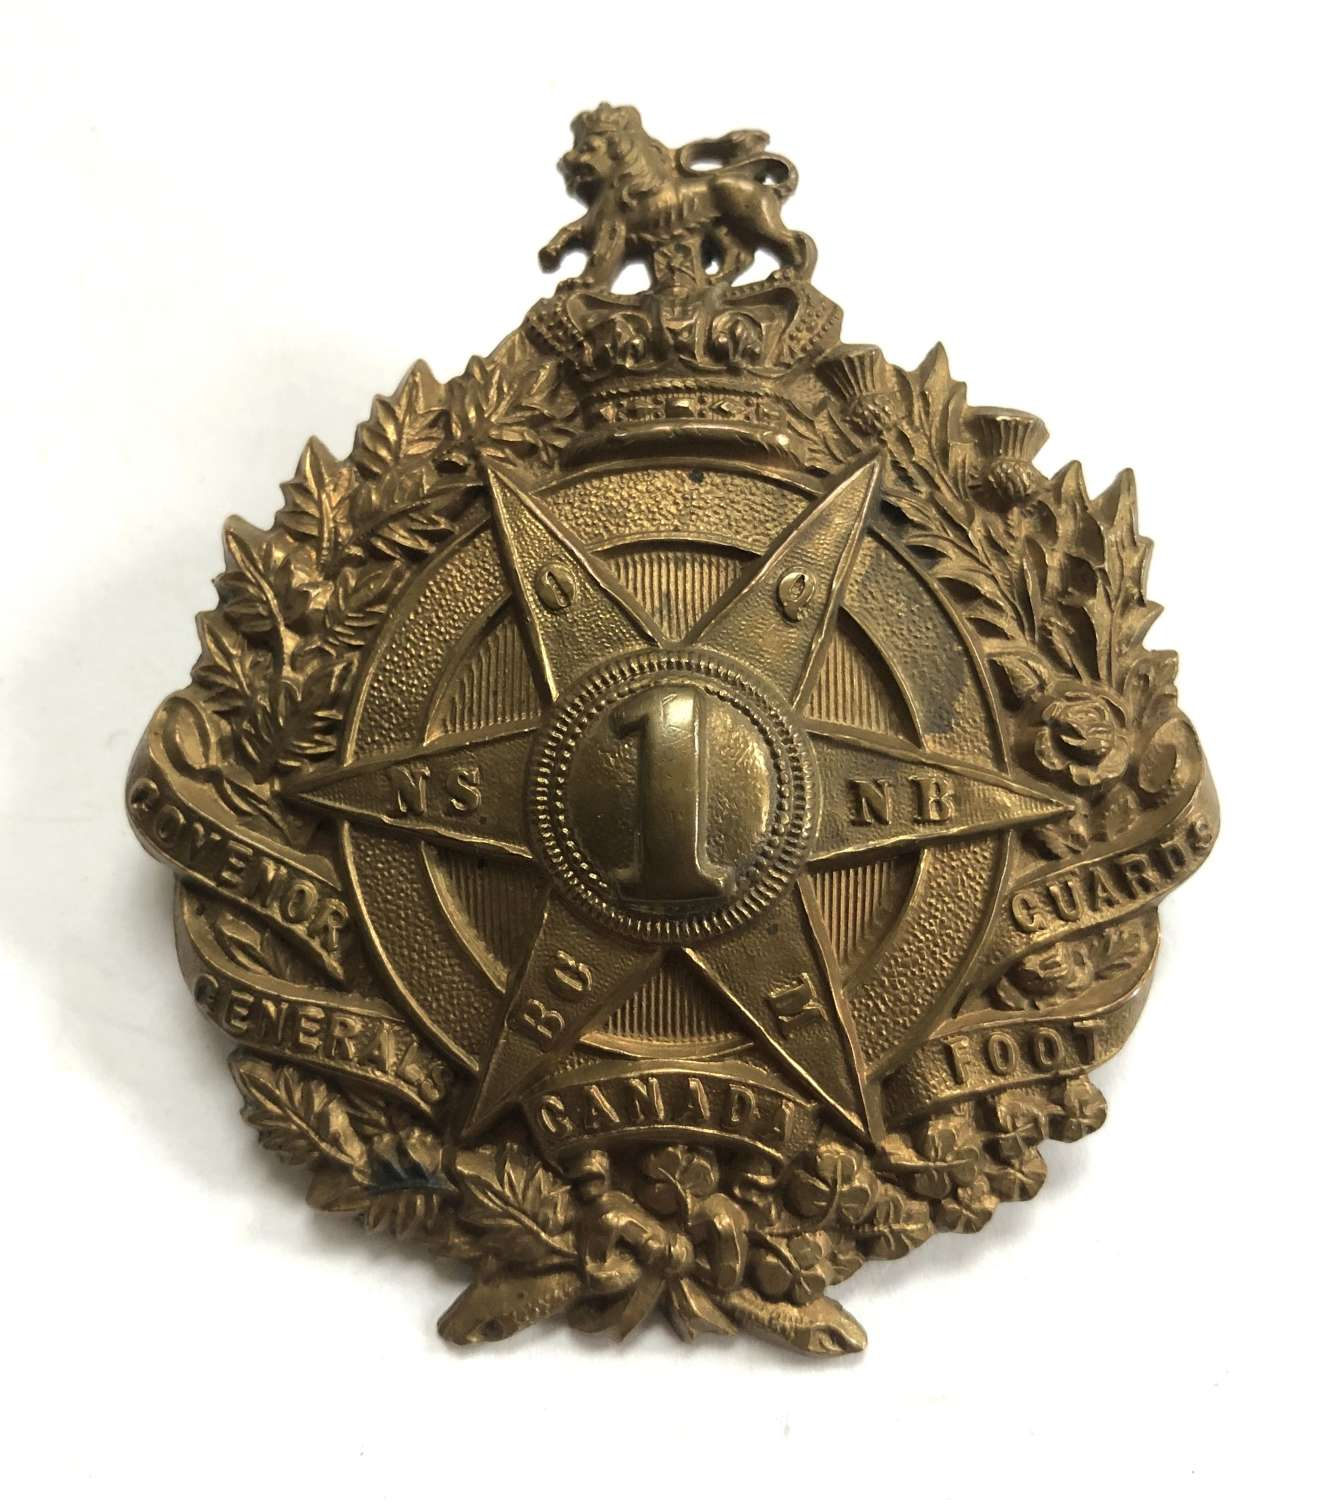 Canadian. Governor Generals Foot Guards Vicrorian glengarry badge